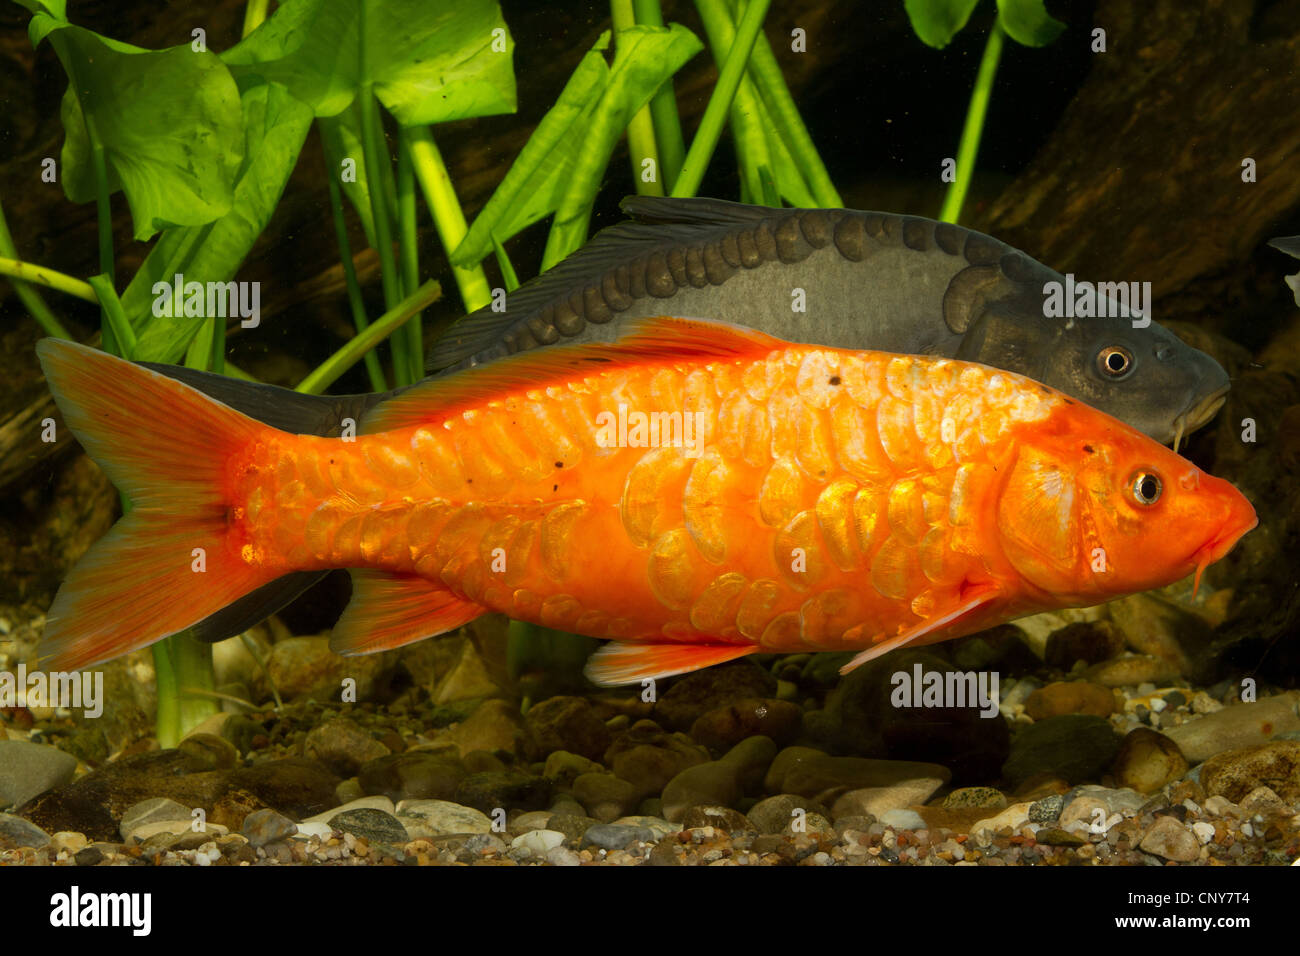 Koi mirror carp for Koi carp fish information